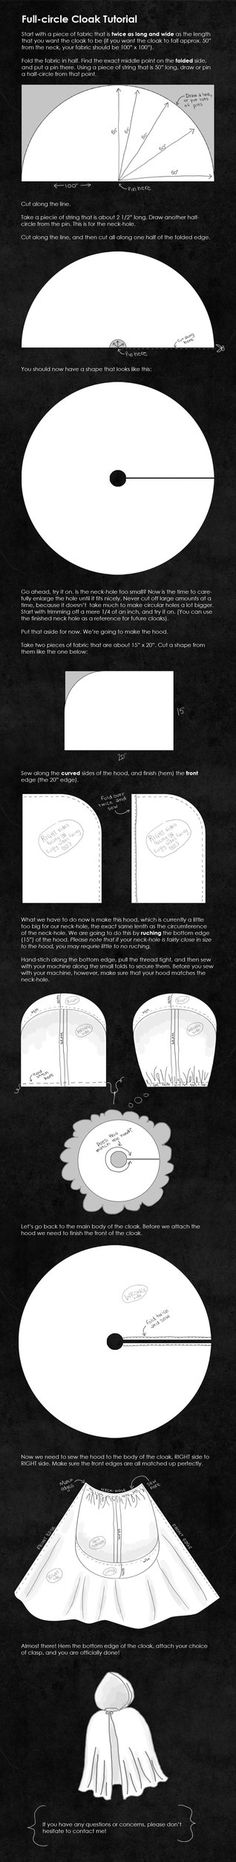 Full-Circle Cloak Tutorial by *ti-DESIGN on deviantART